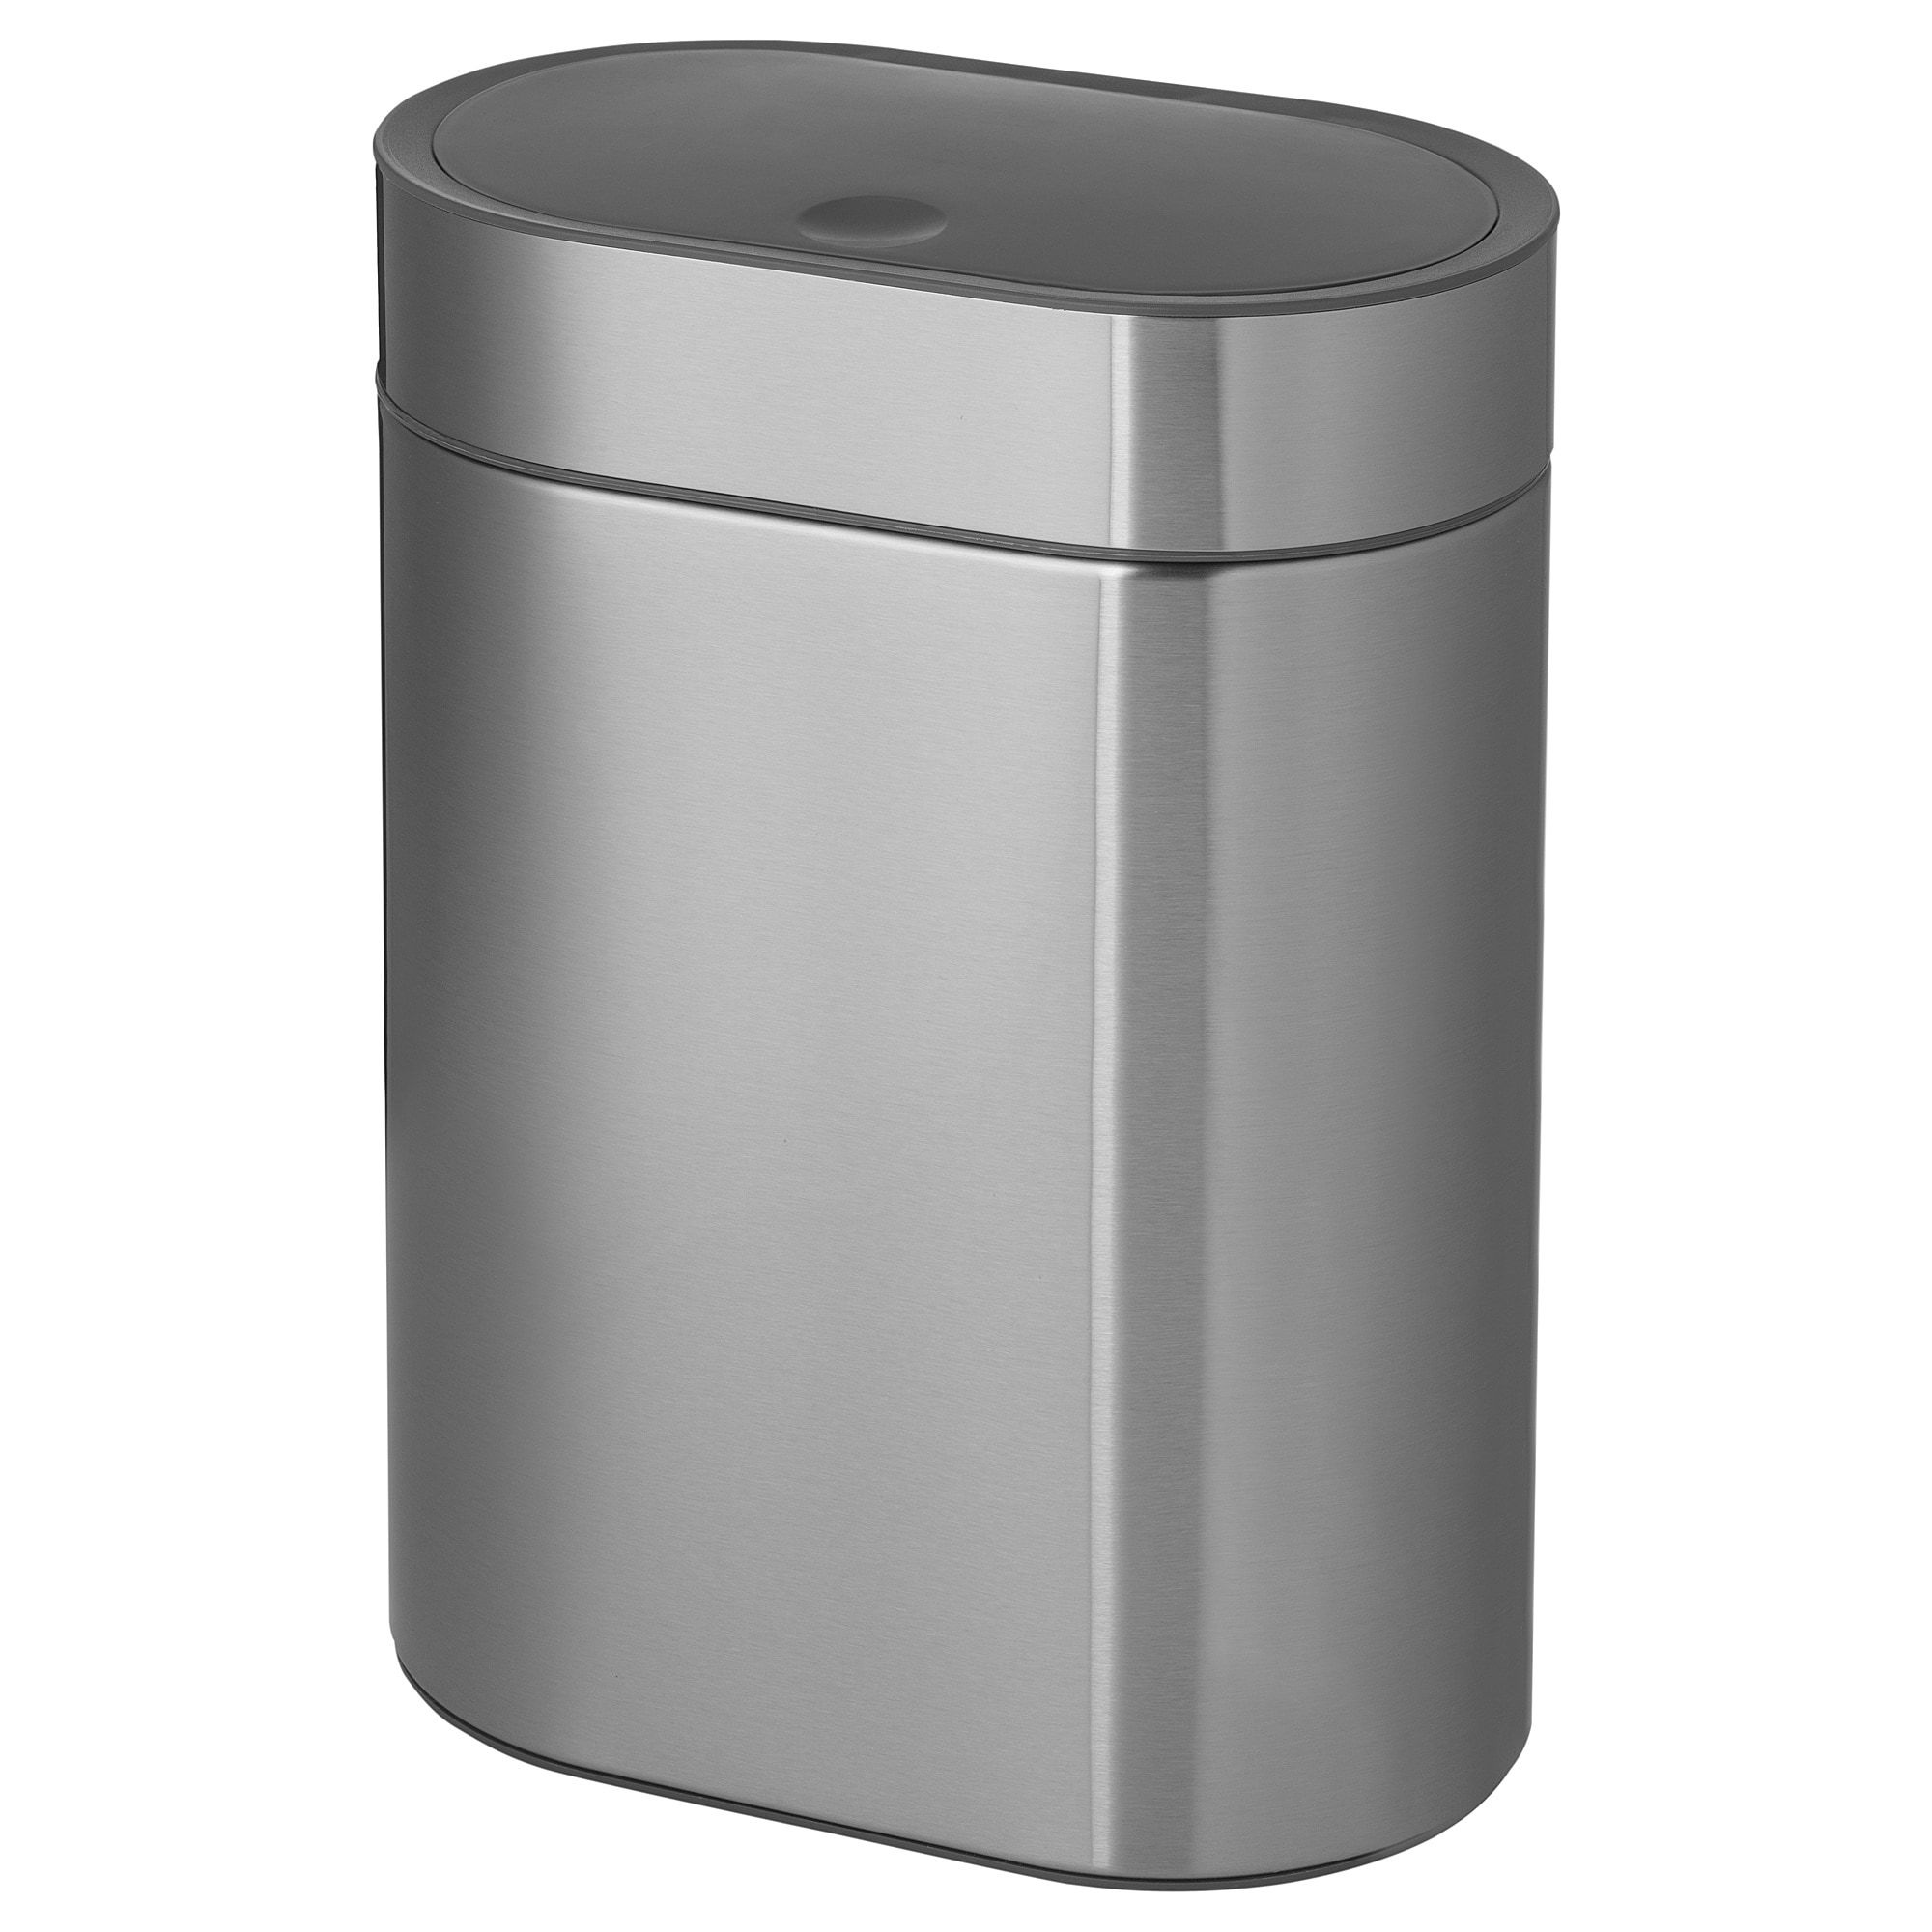 Brogrund Touch Top Bin Stainless Steel 4 L Trash Can Wash Basin Accessories Keep It Cleaner